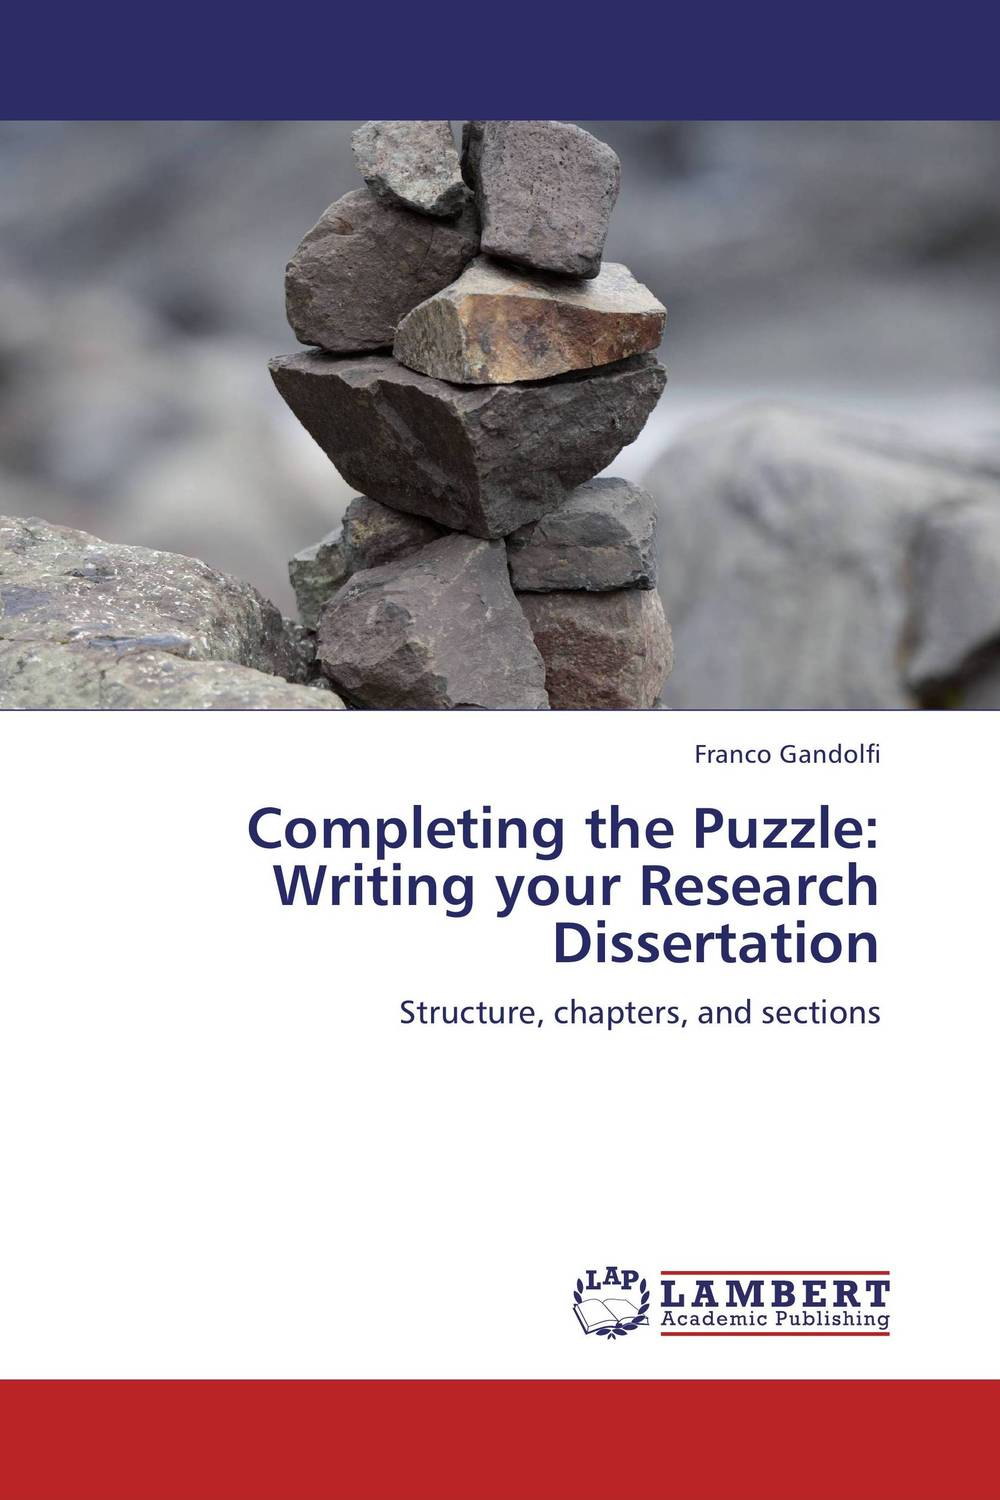 Completing the Puzzle: Writing your Research Dissertation